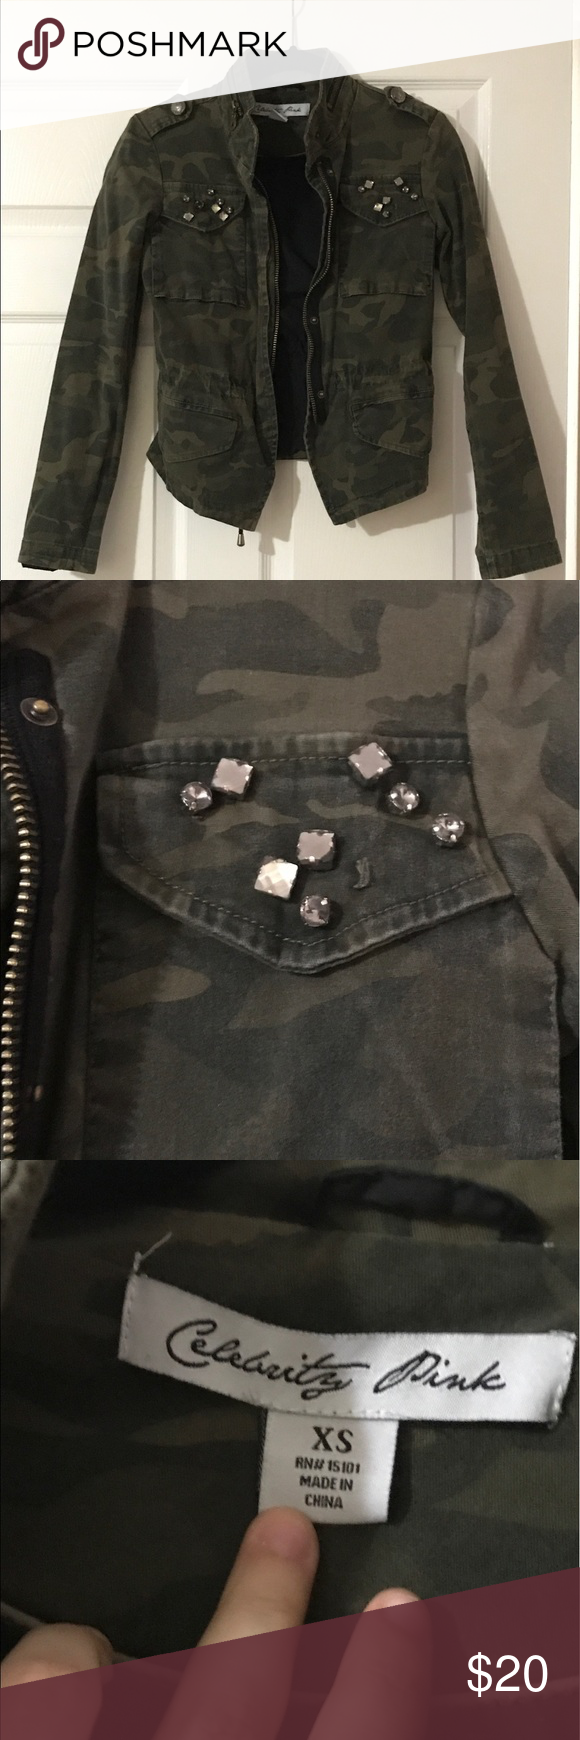 ⭐️FLASH SALE ‼️Celebrity Pink Military Jacket Very Good Quality Jacket                                                                Double Lined; Very Sturdy.                                                              Closure Snaps & Zipper on the Front.                                            Brand For Exposure Missguided Jackets & Coats Jean Jackets